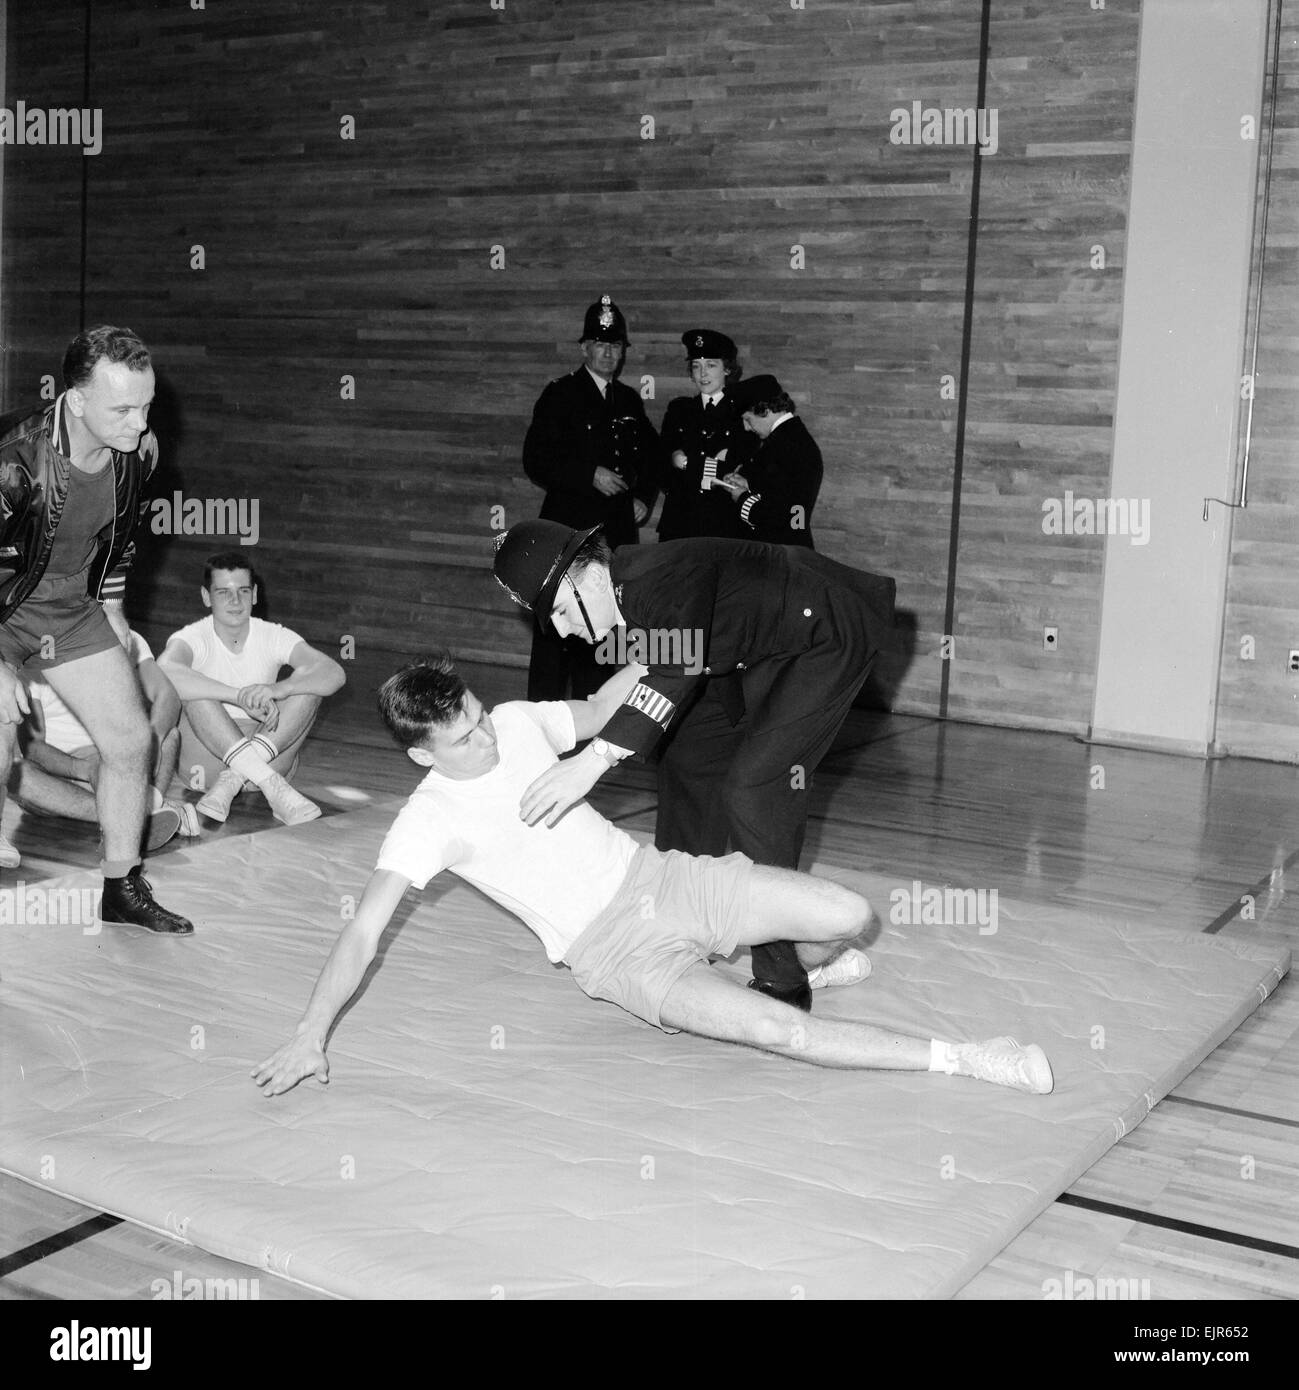 English police officers watch & take part in a hand to hand fighting training session at a Police Academy in - Stock Image